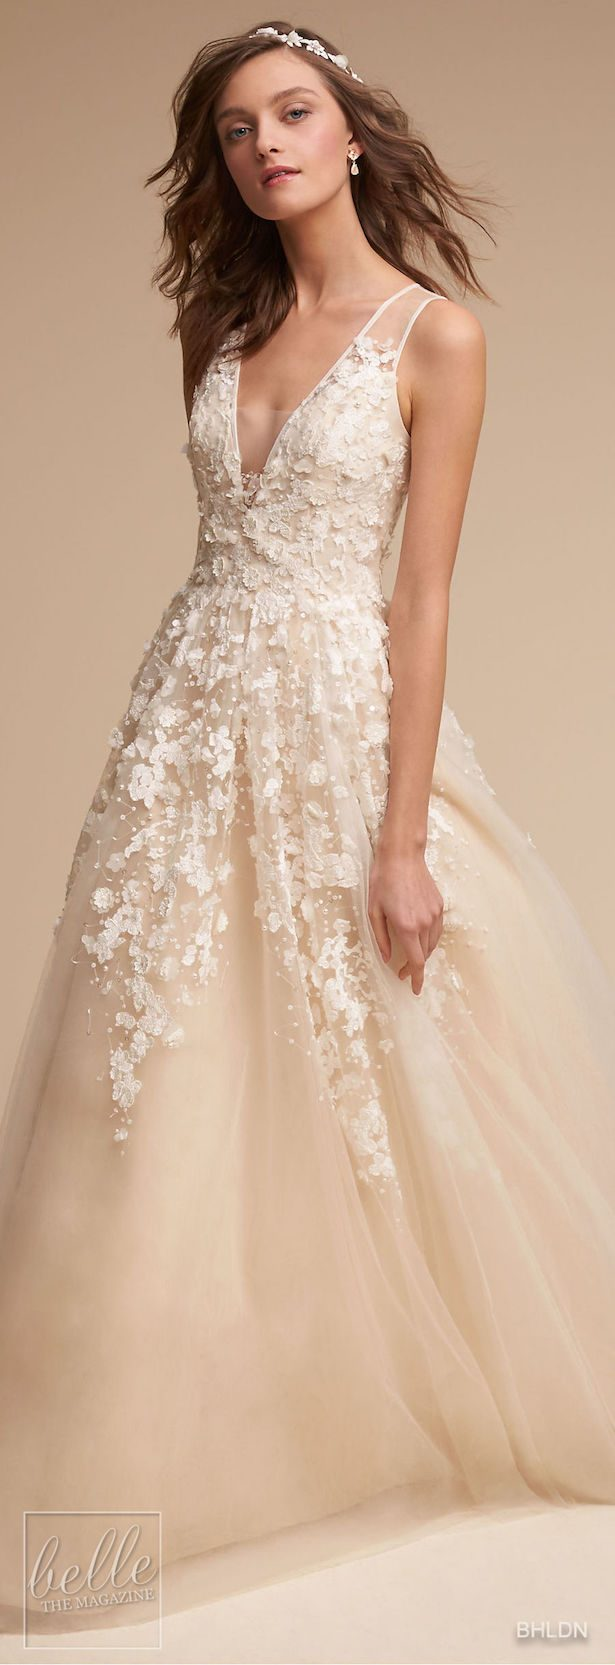 33ab9a708e1 Our Favorite Wedding Dresses from BHLDN - Belle The Magazine